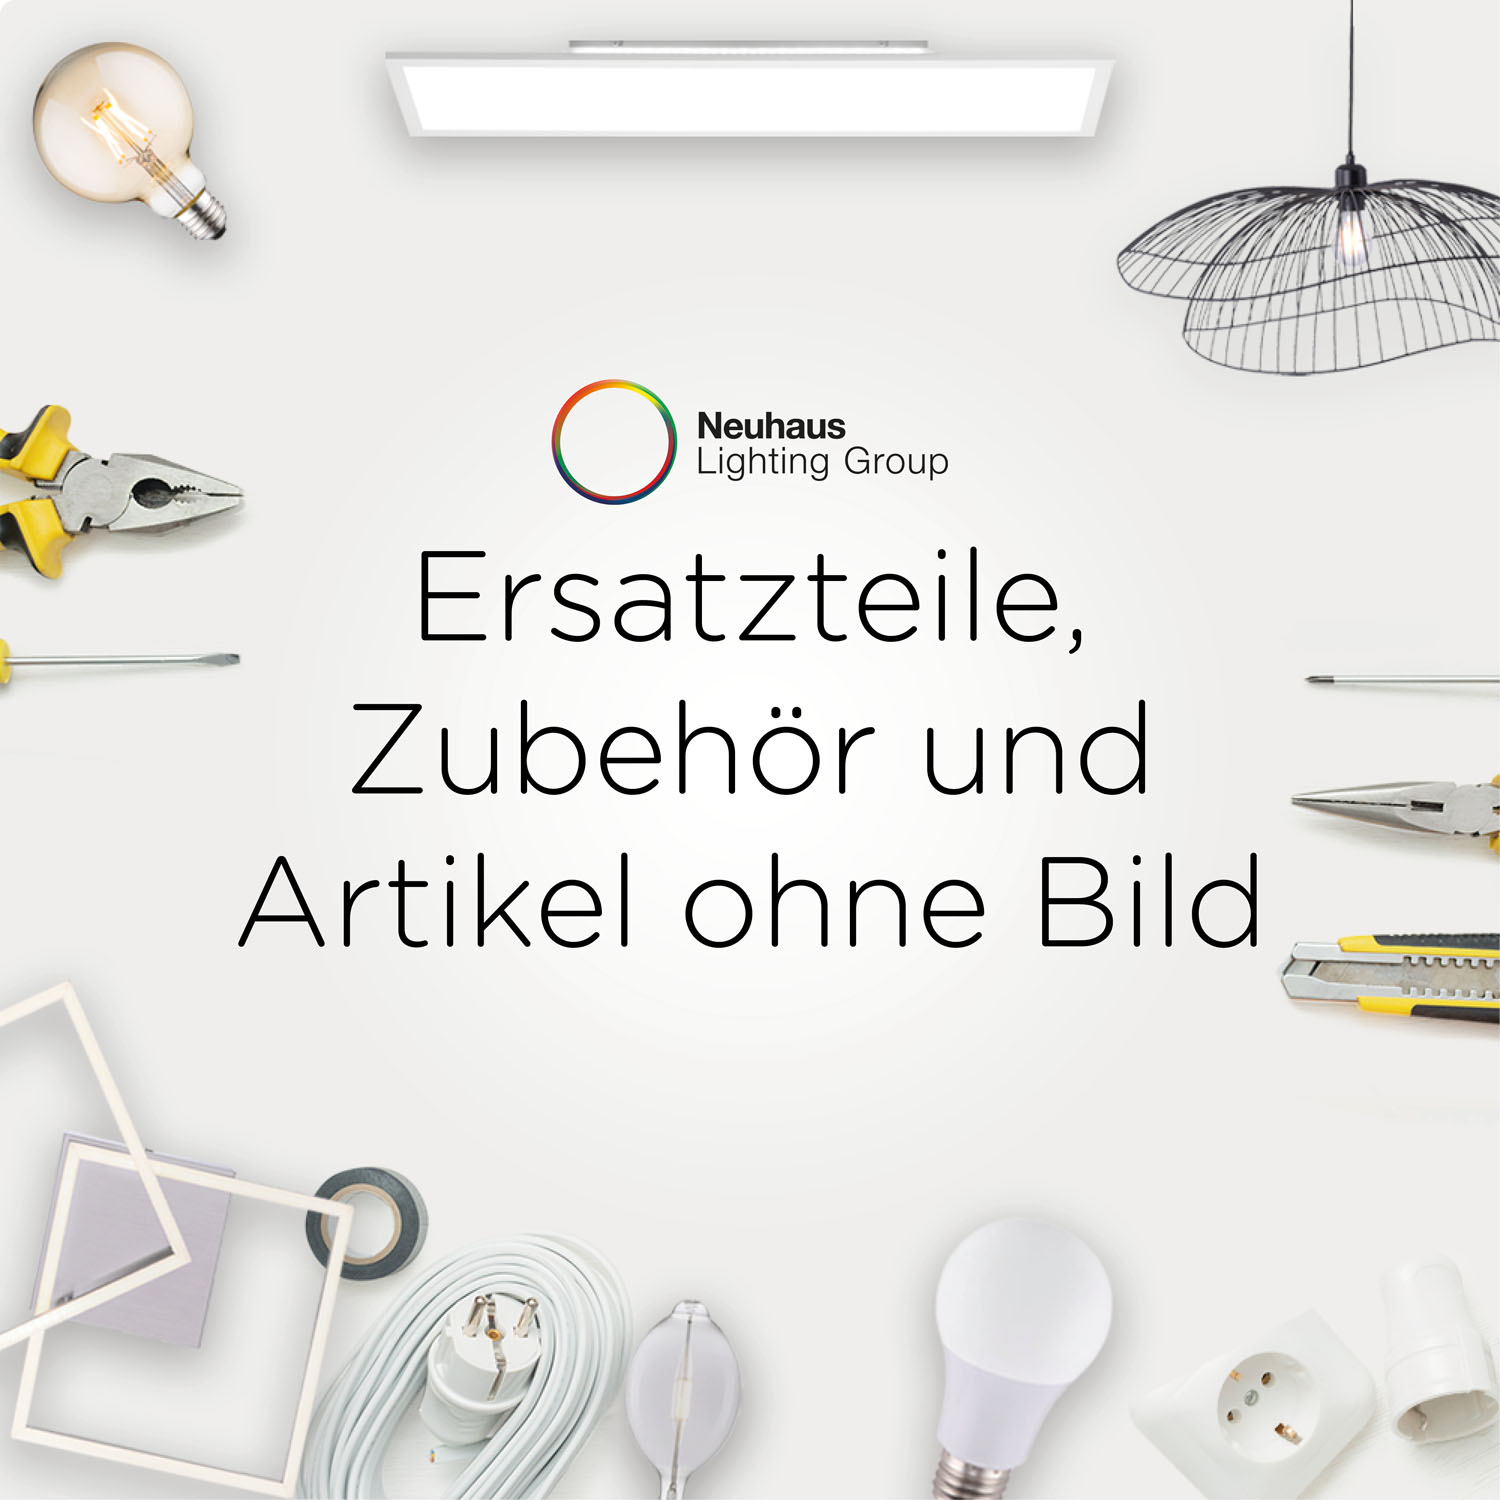 LED Pendelleuchte, Smart Home für Zigbee Gateway